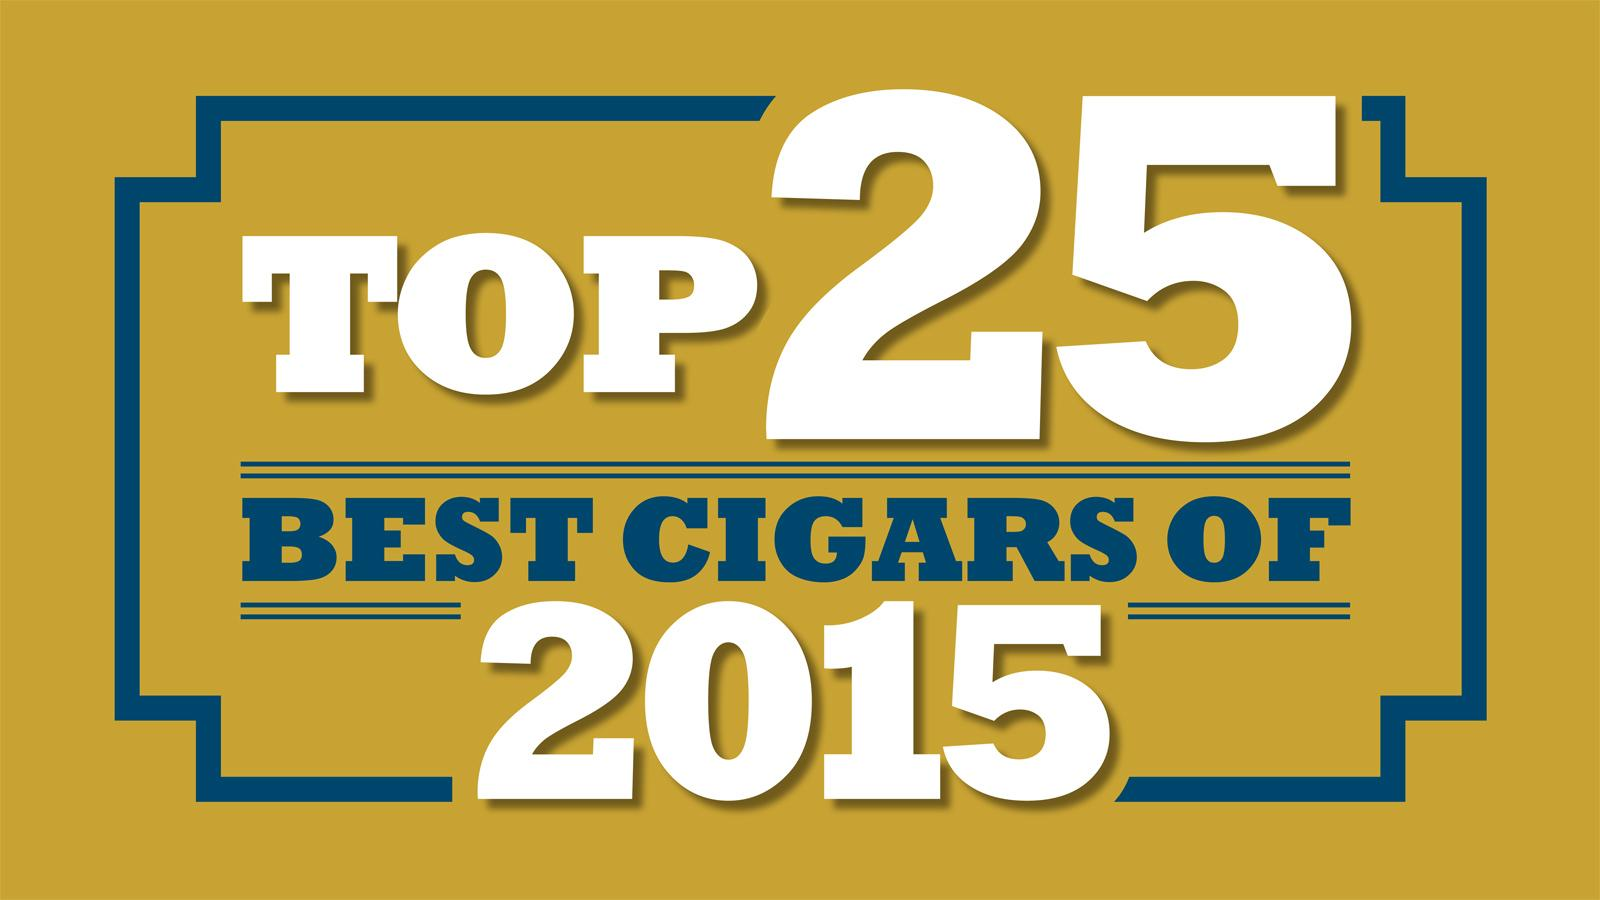 Top 25 Cigars of 2015 Reveal Schedule